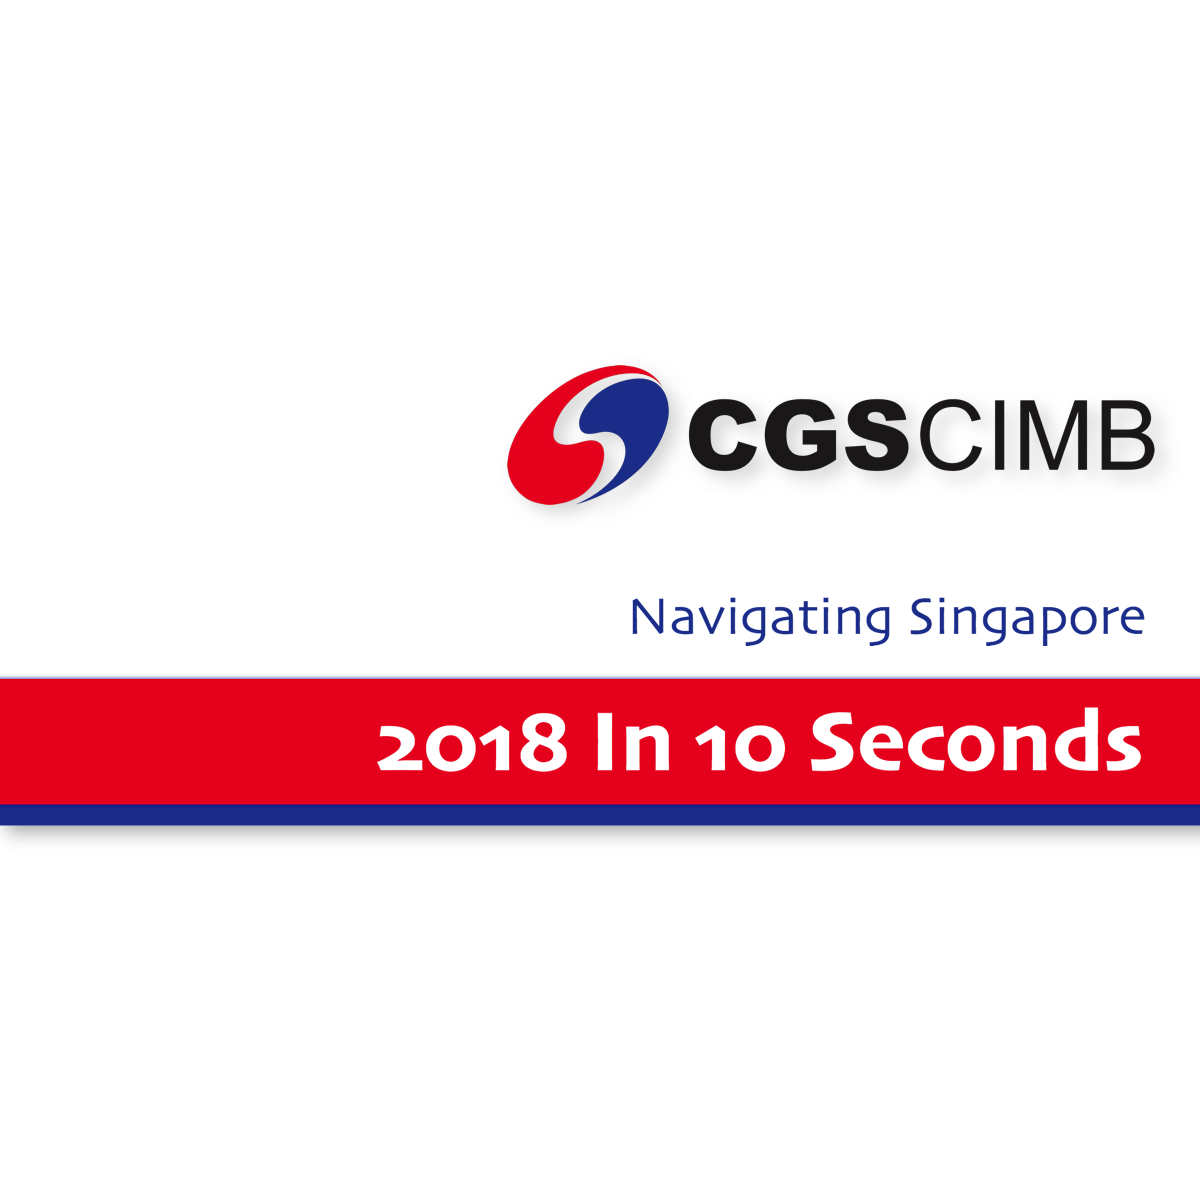 CGS CIMB Research - Navigating Singapore 2018 | SGinvestors.io